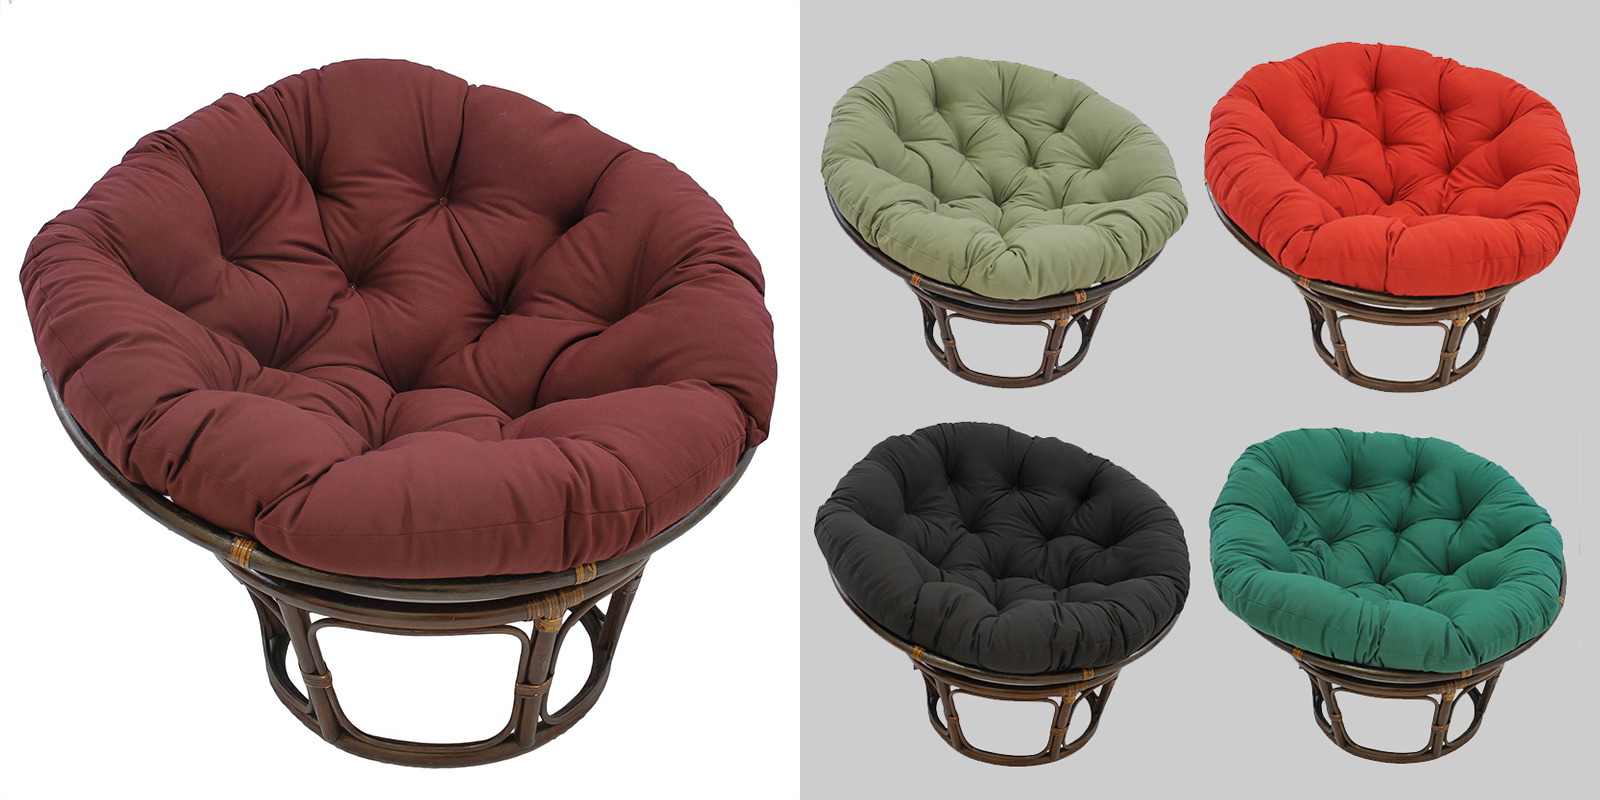 Patio Chair - Classic Papasan Chair